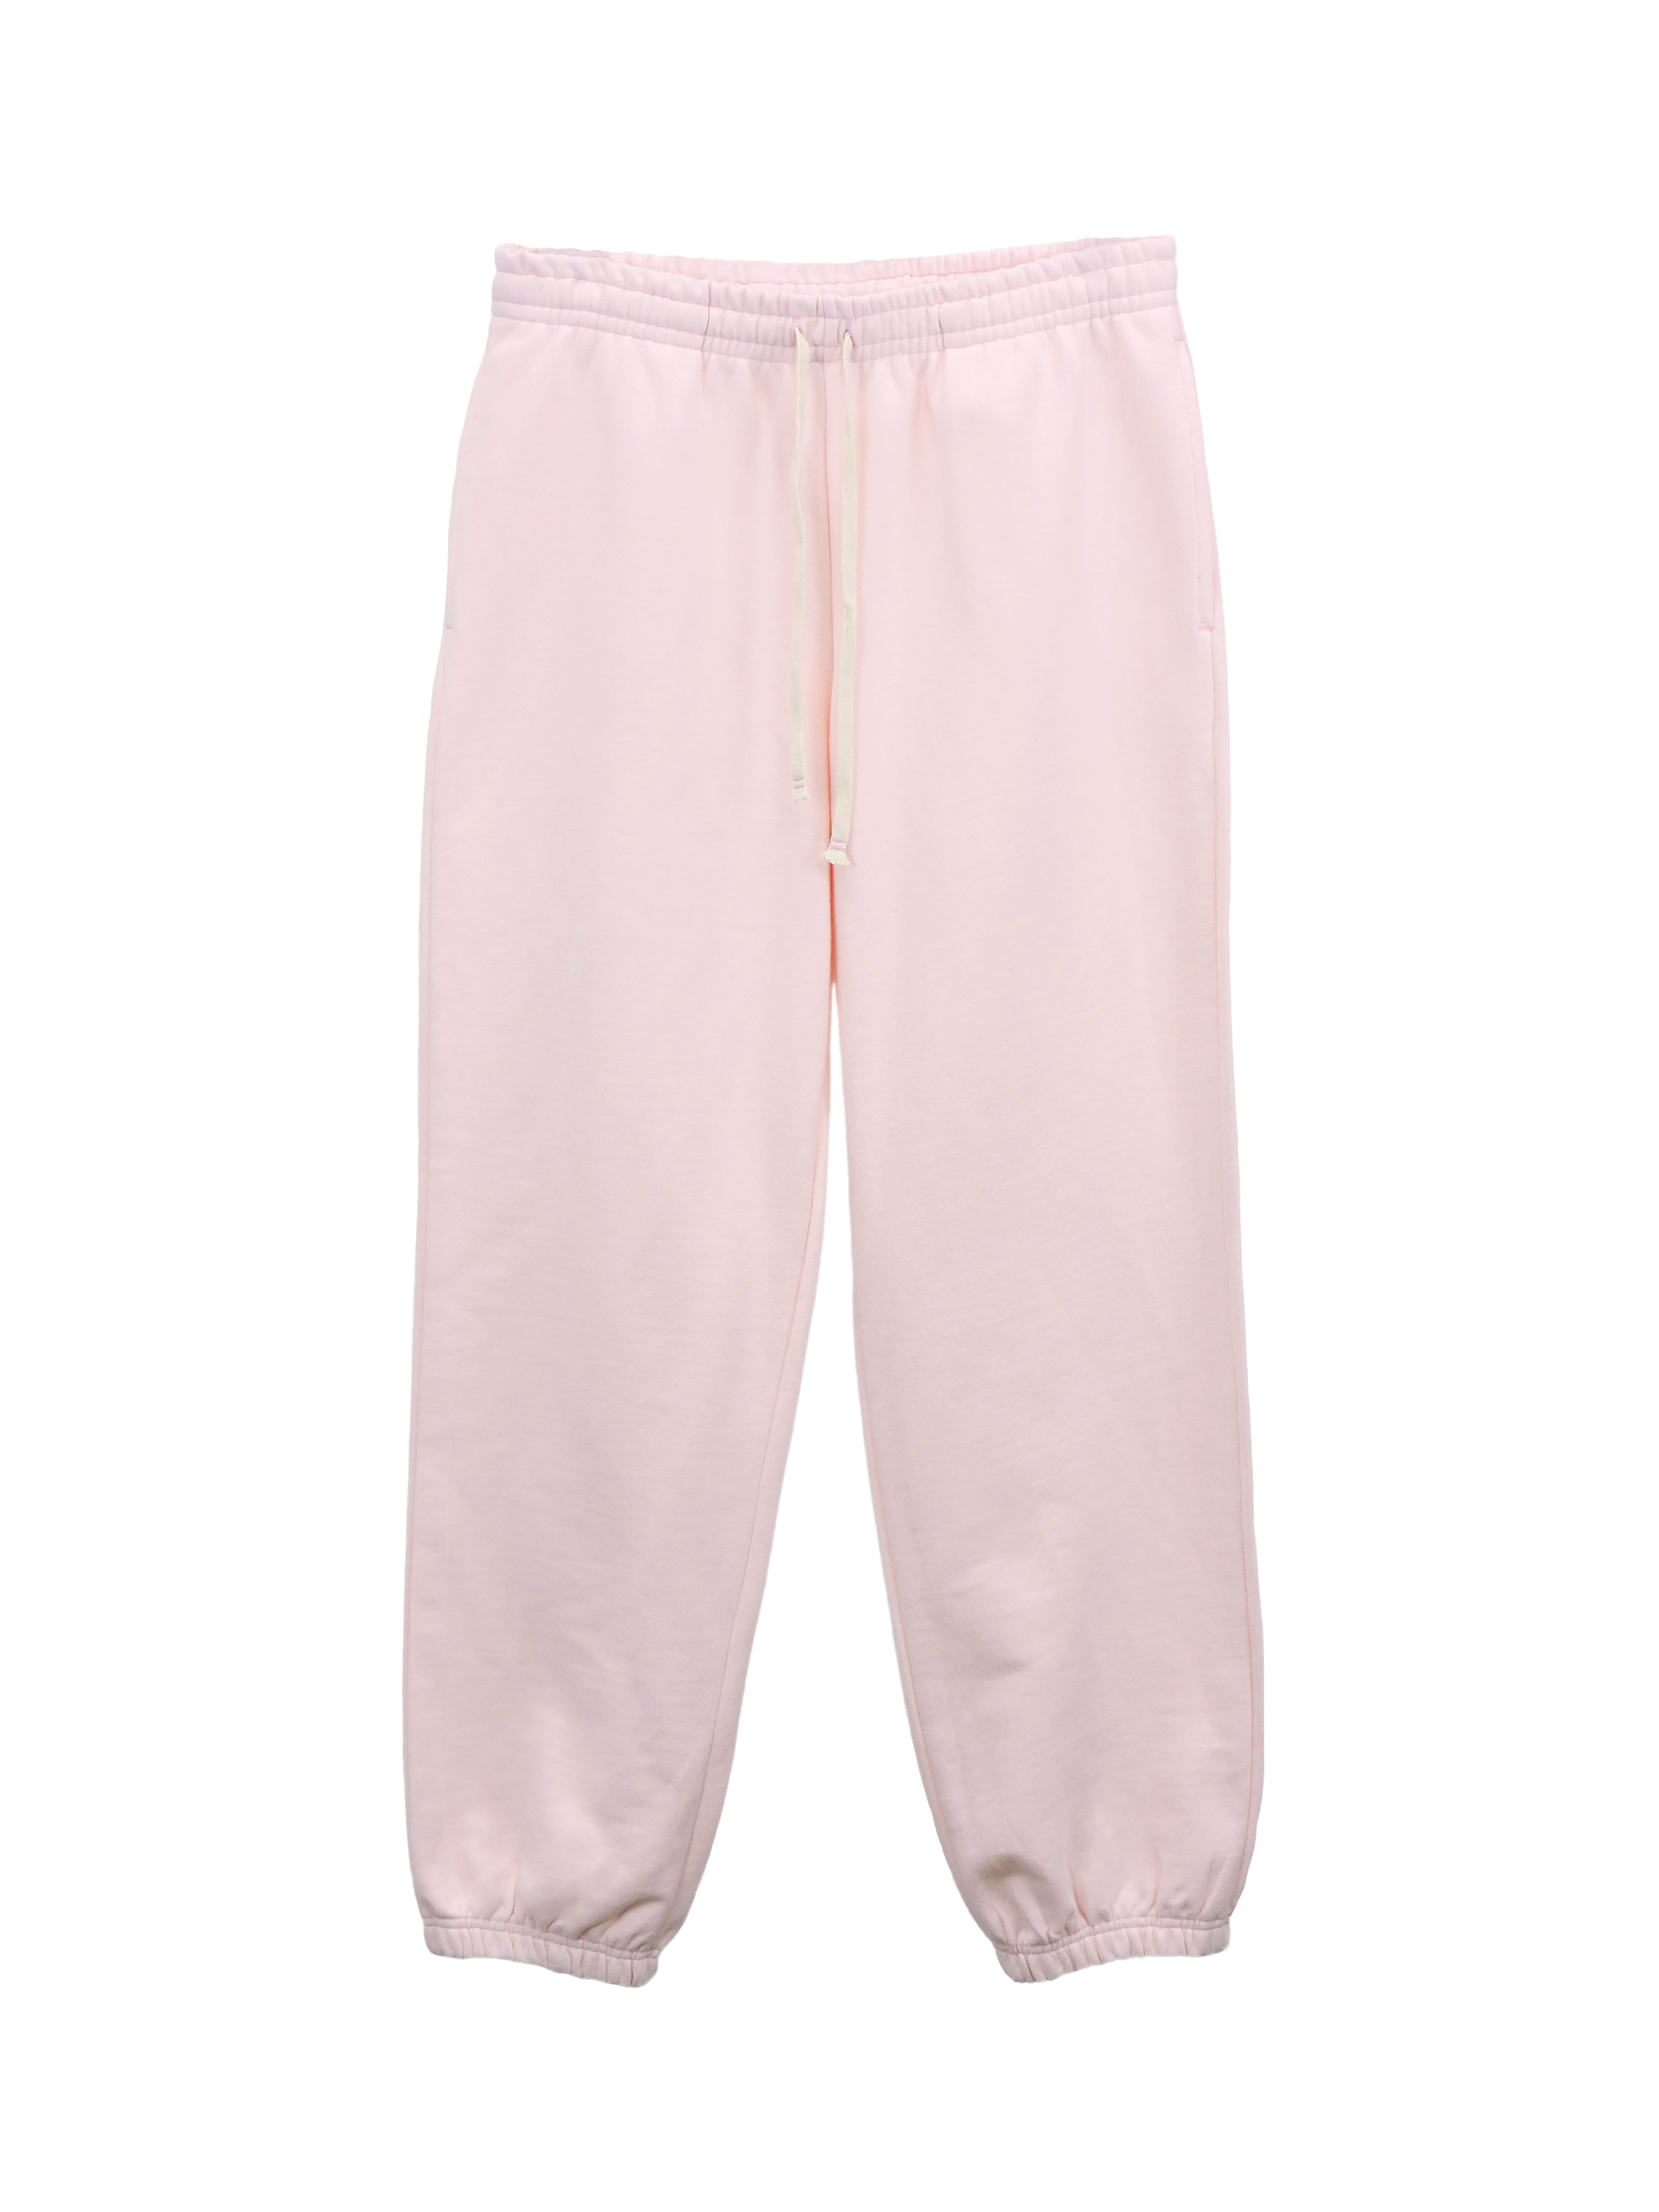 blank pale pink - SWEATPANT